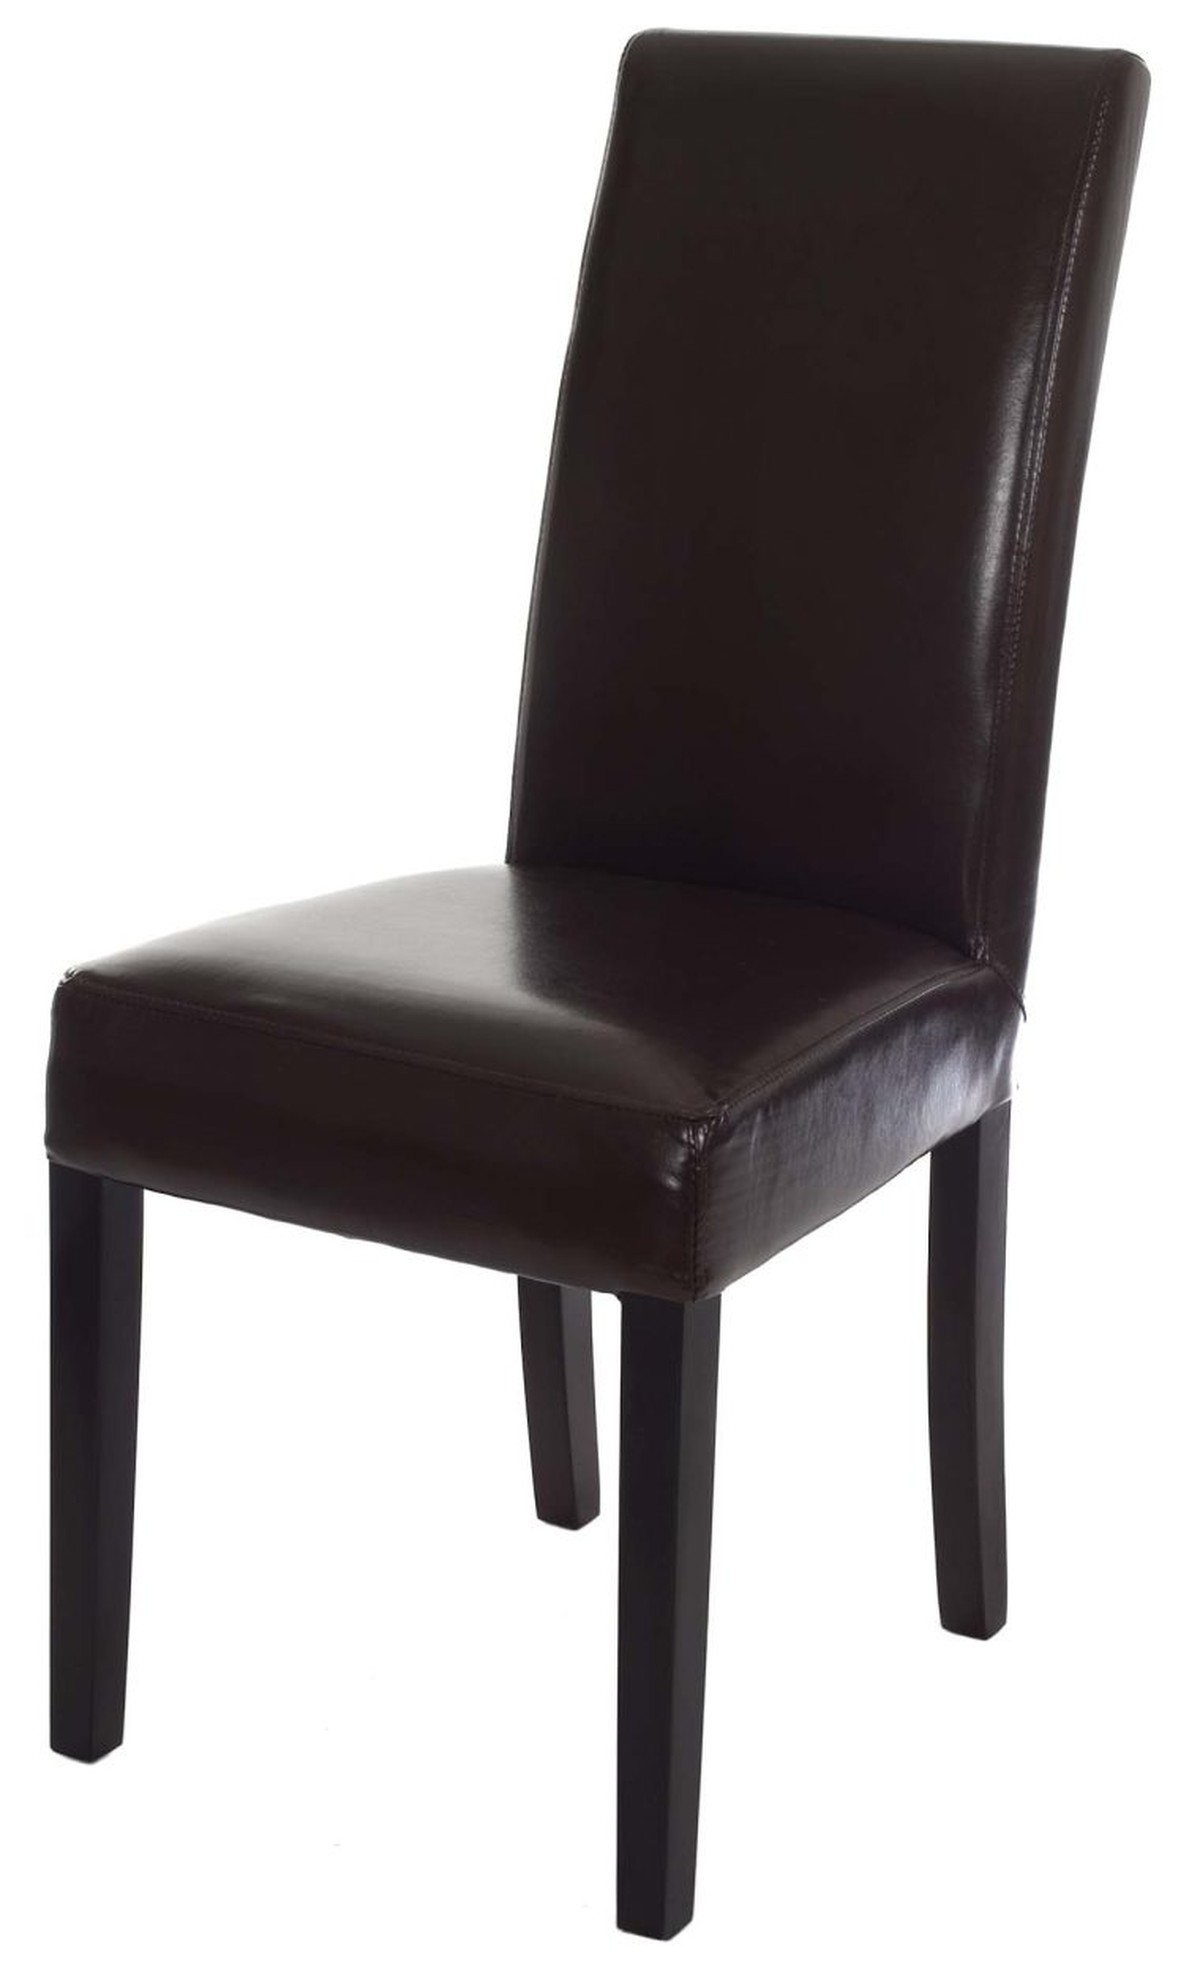 Curlew SecondHand Marquees Fiesta Furniture  : faux leather dining chair 72 from curlew.co.uk size 1200 x 1983 jpeg 97kB